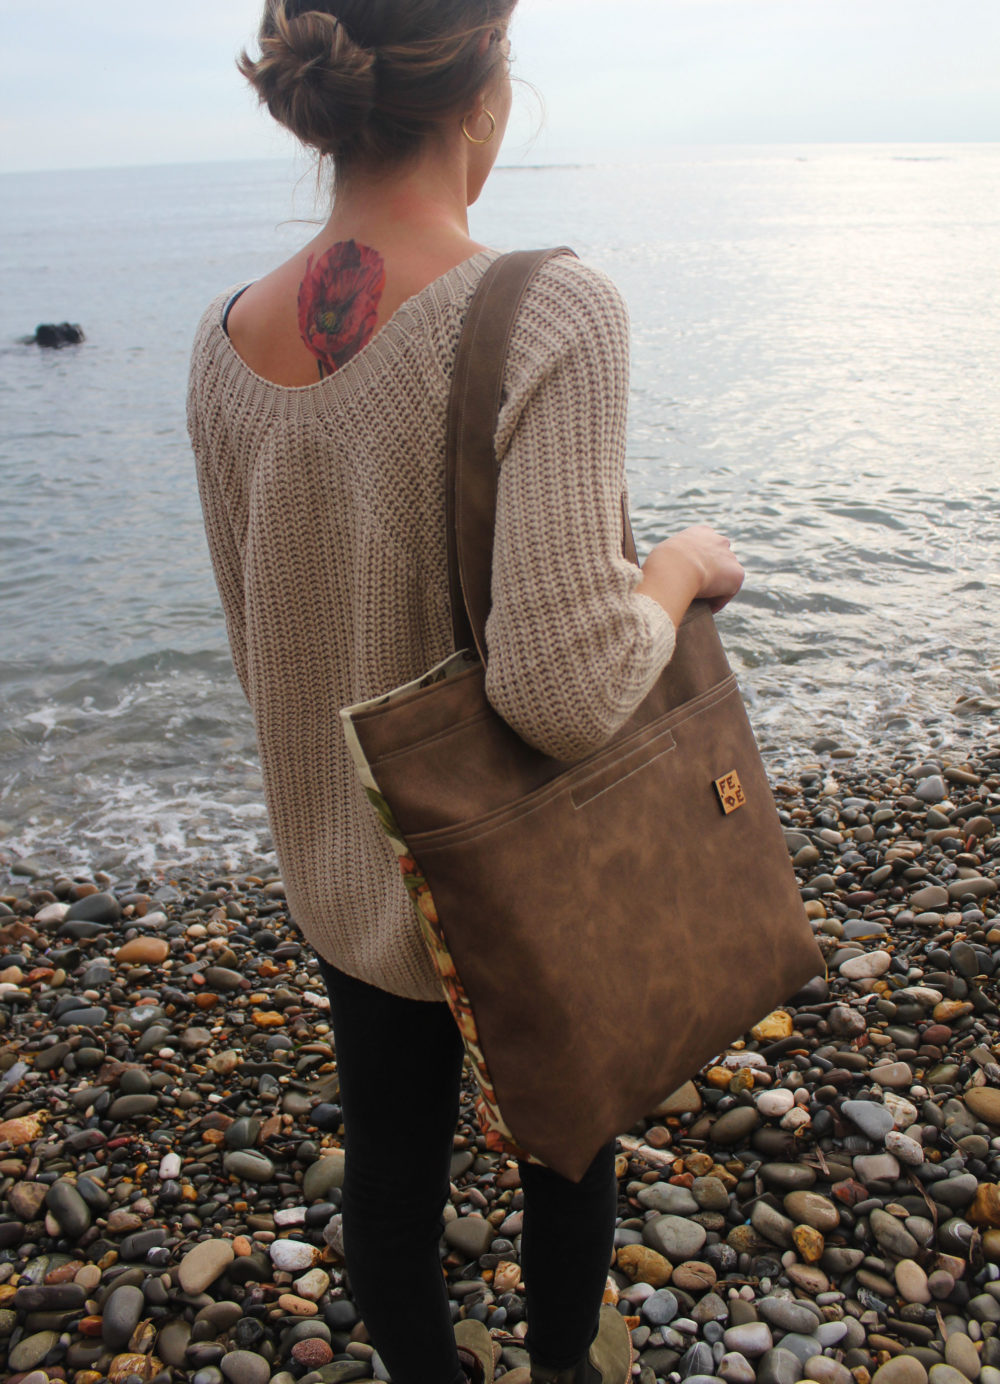 Vegan LeatherToteBag - Fede Surfbags